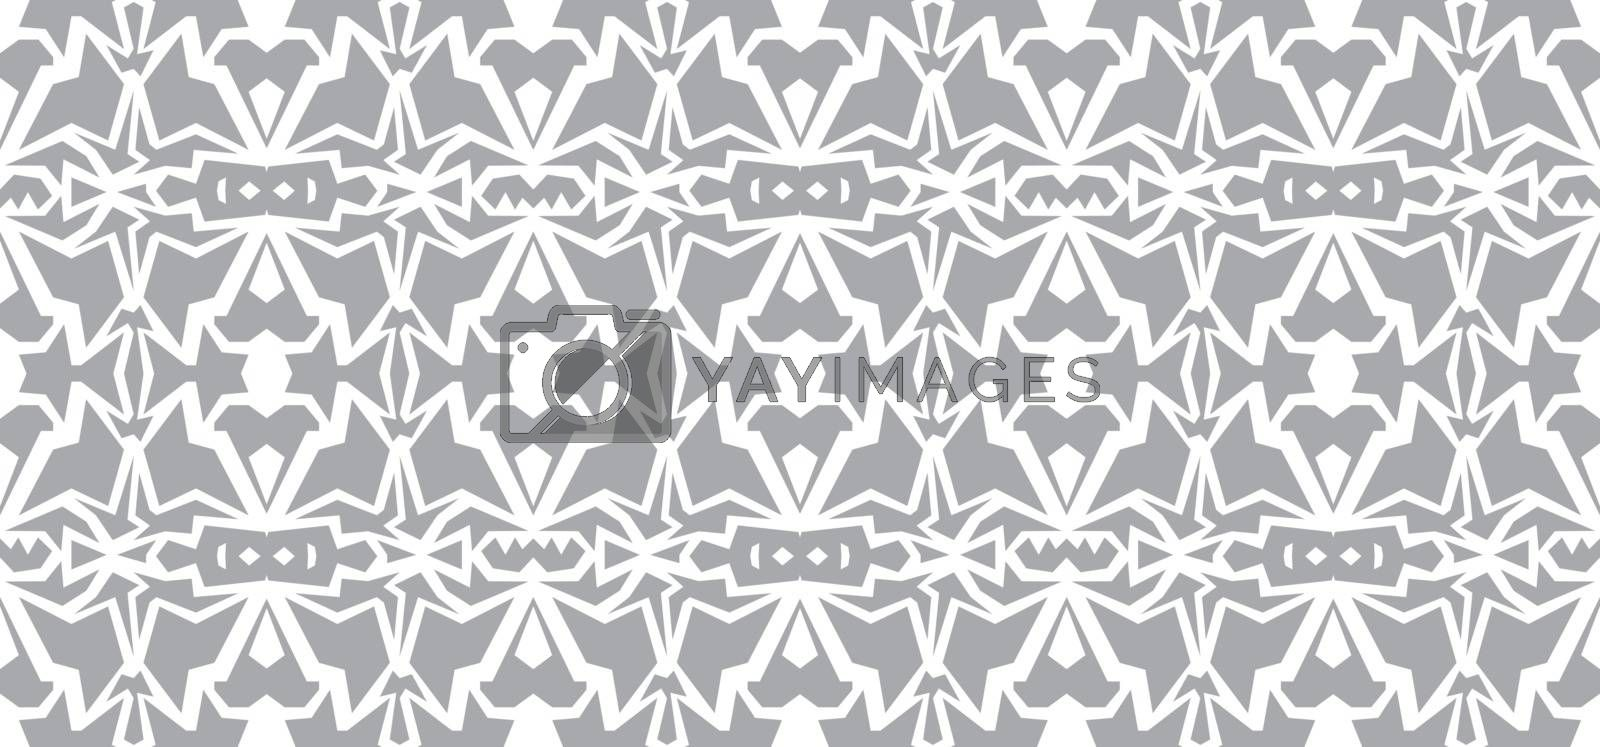 Vector seamless wallpaper. Monochrome gray white abstract pattern